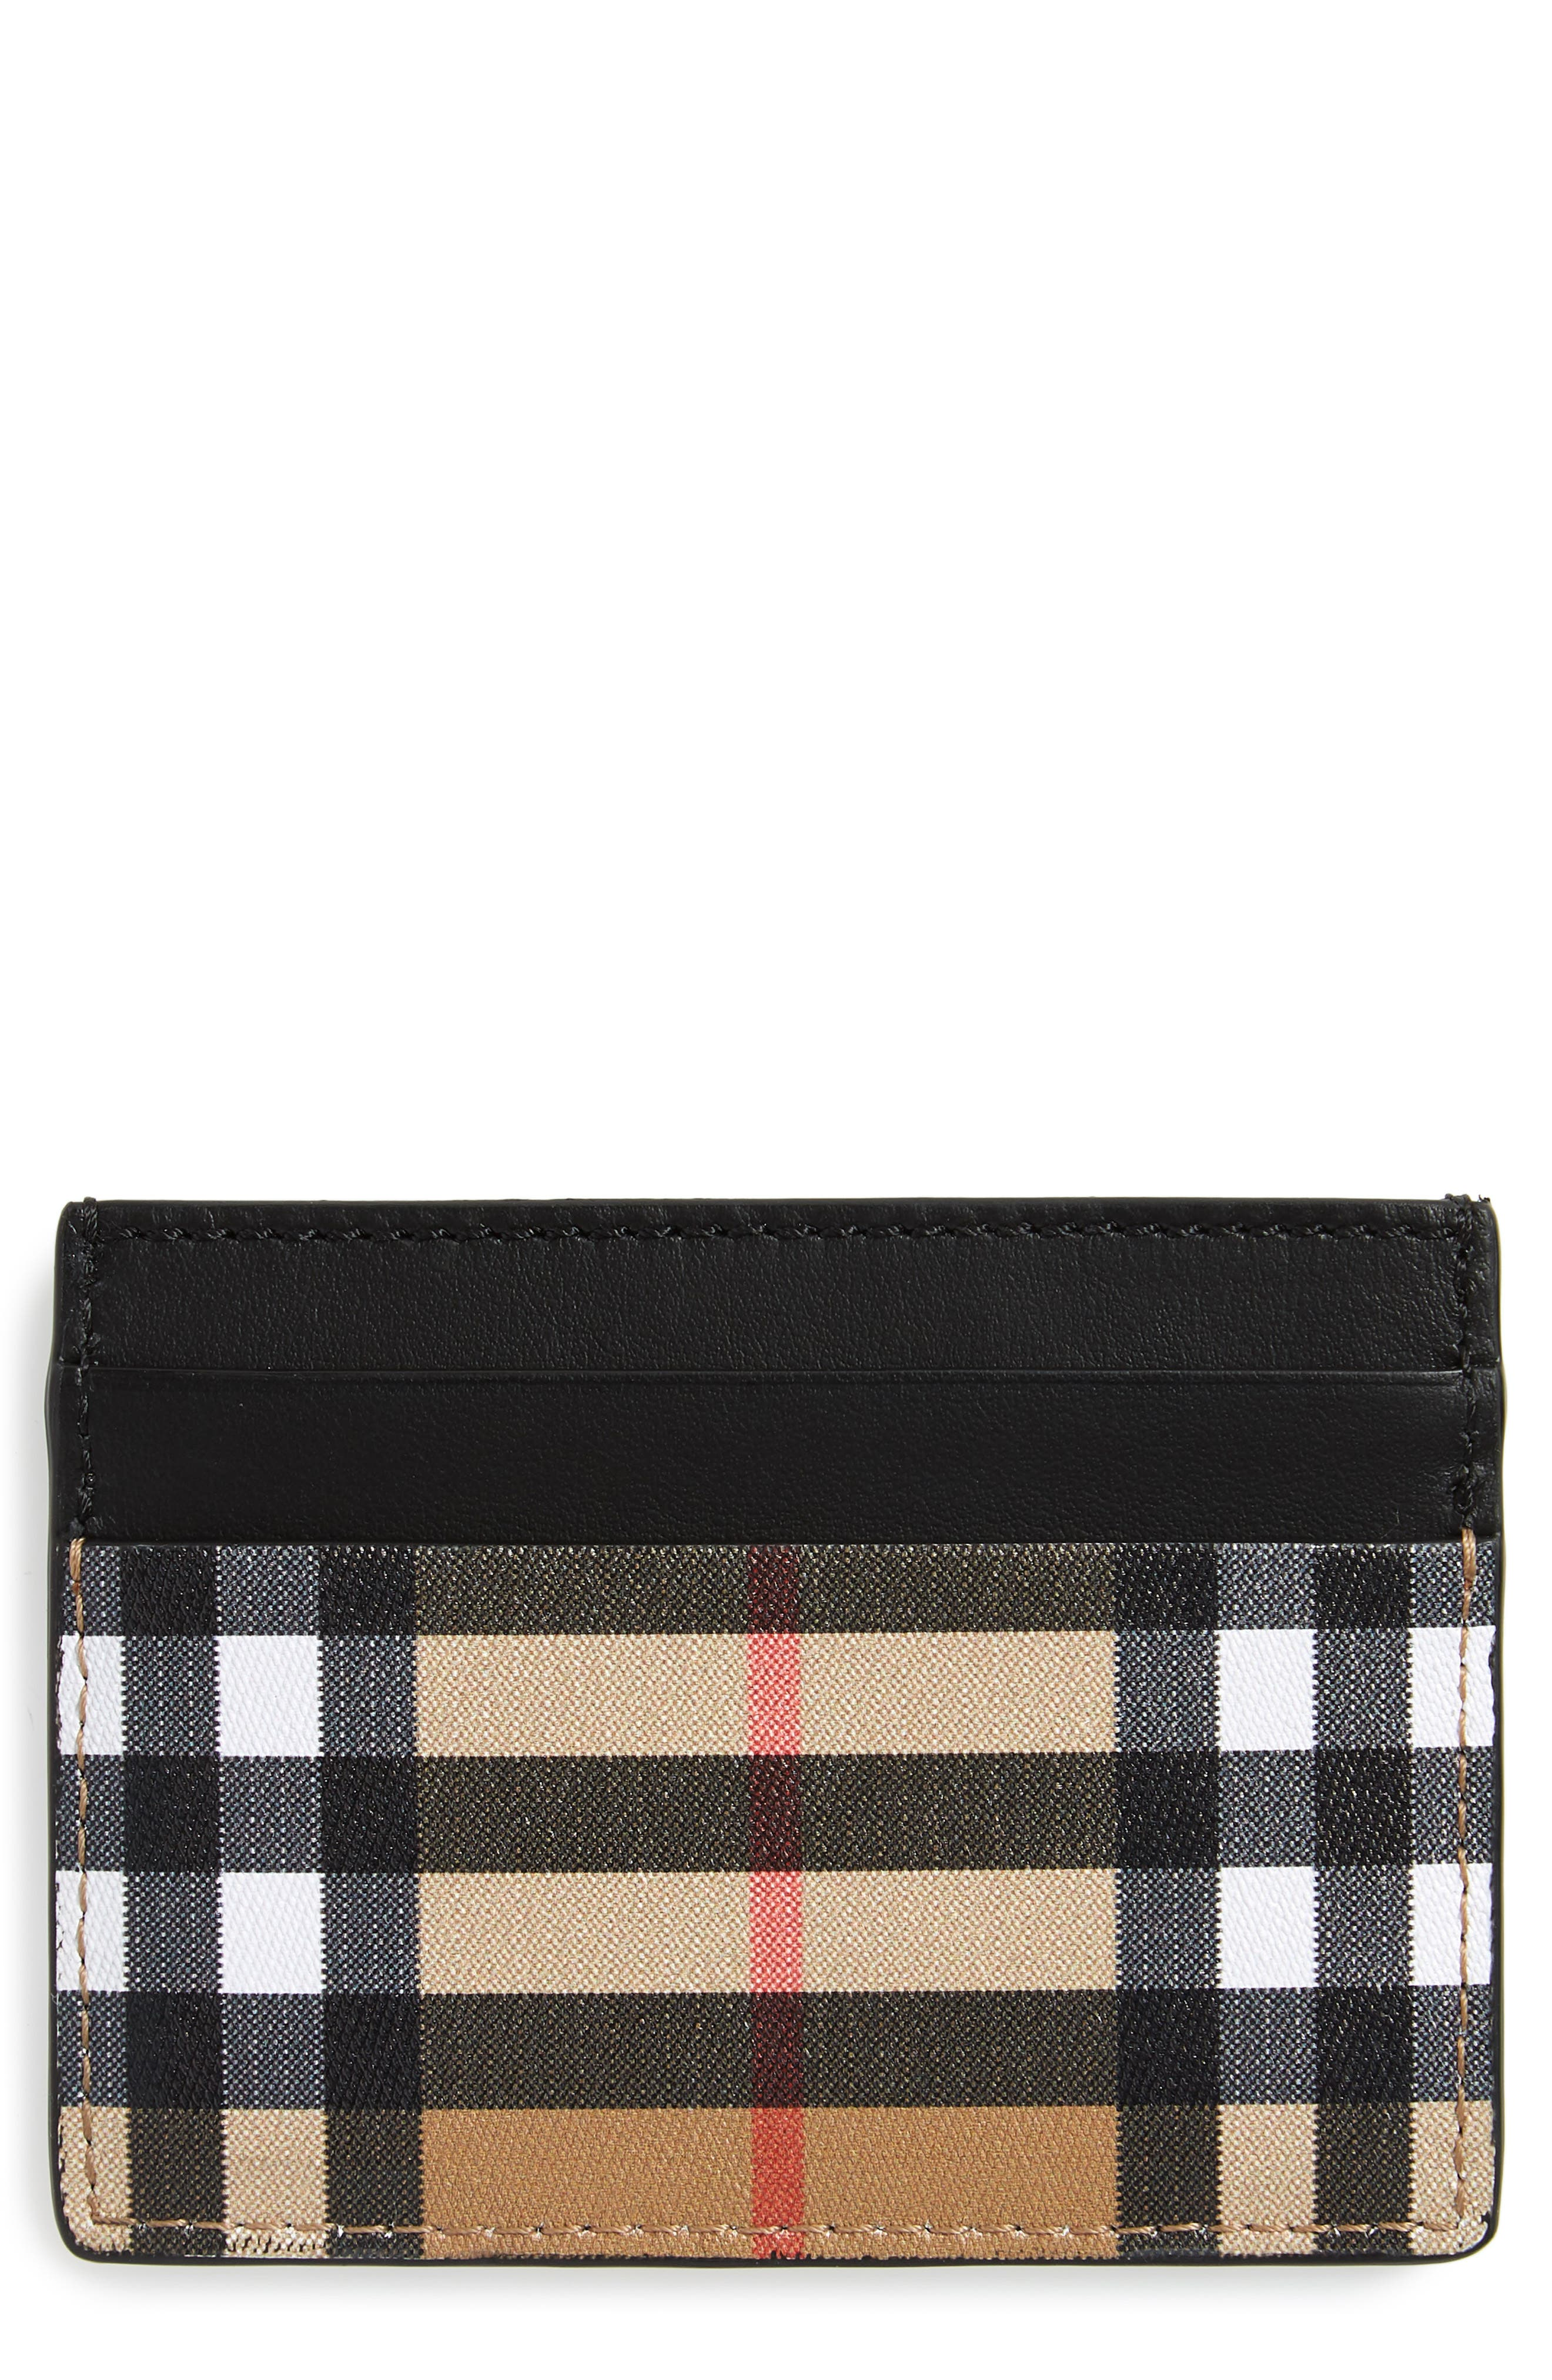 BURBERRY Horseferry Leather Card Case, Main, color, BLACK